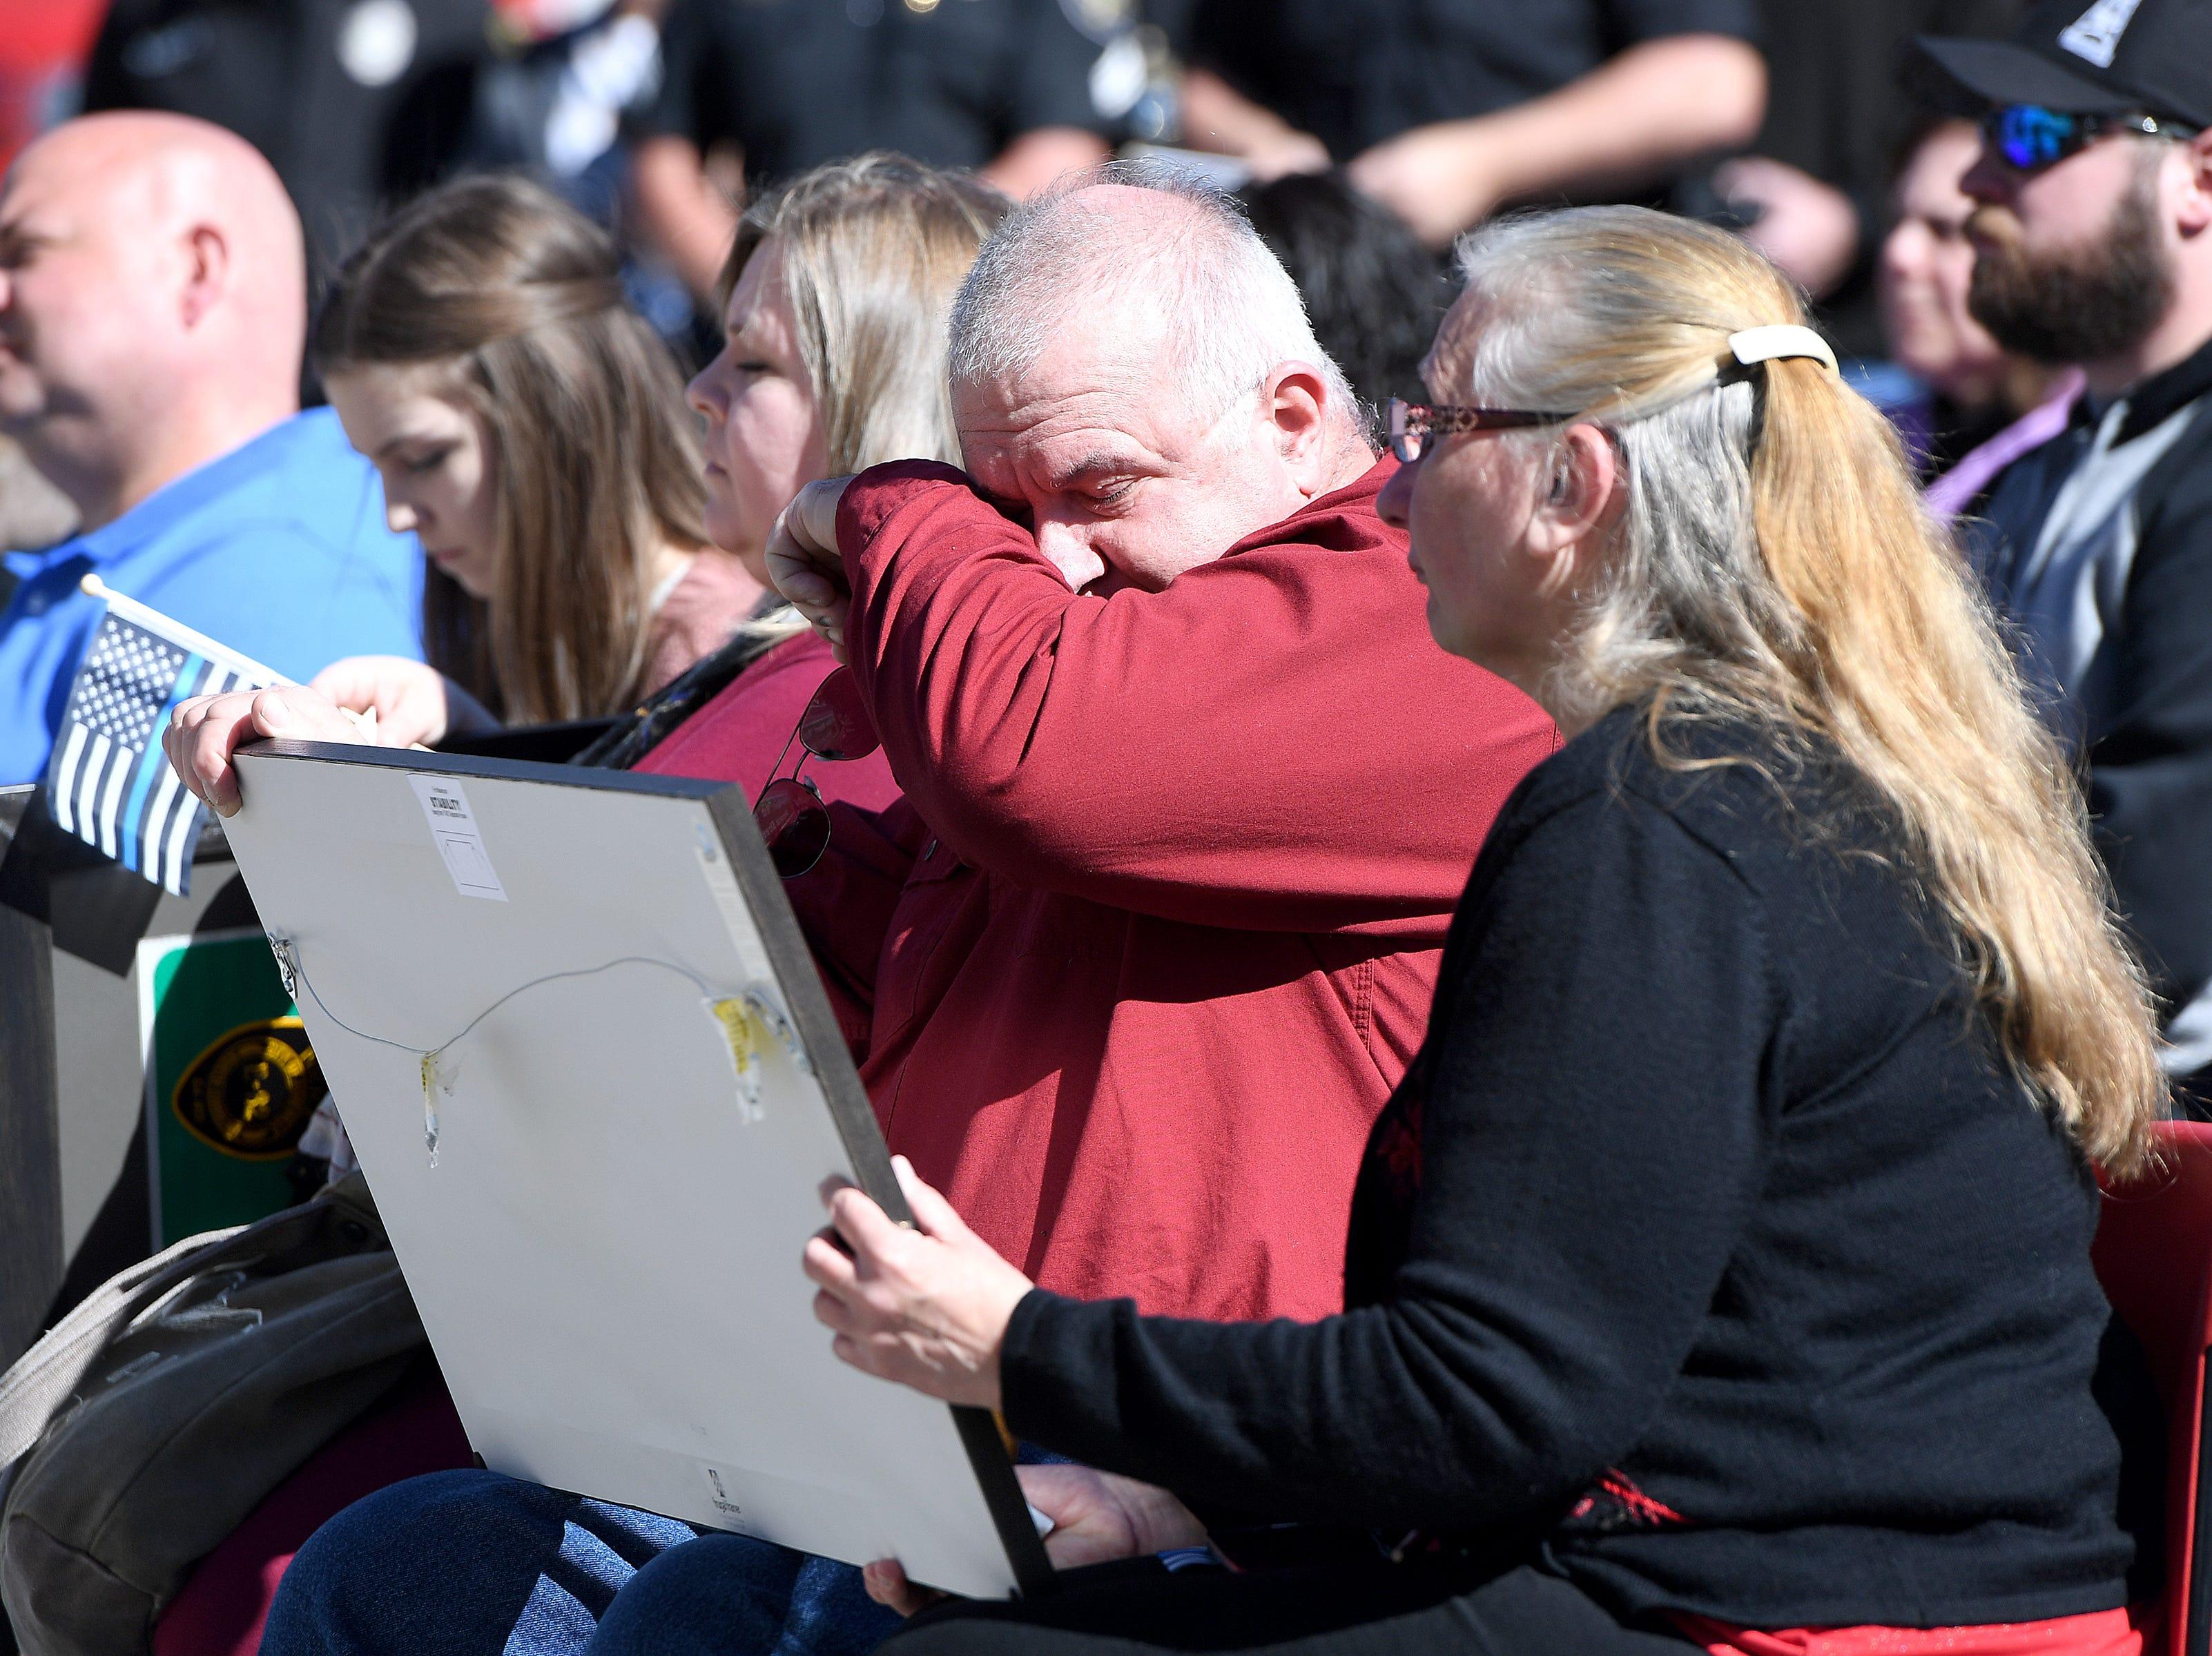 Robert Bingaman's father, Robert Allen Bingaman, wipes his face after he and his wife, Donna, were presented with a framed sign like the one dedicating a portion of Old Haywood Road to the Asheville police officer at the Traffic Safety Office on the five-year-anniversary of his death on Oct. 29, 2018.